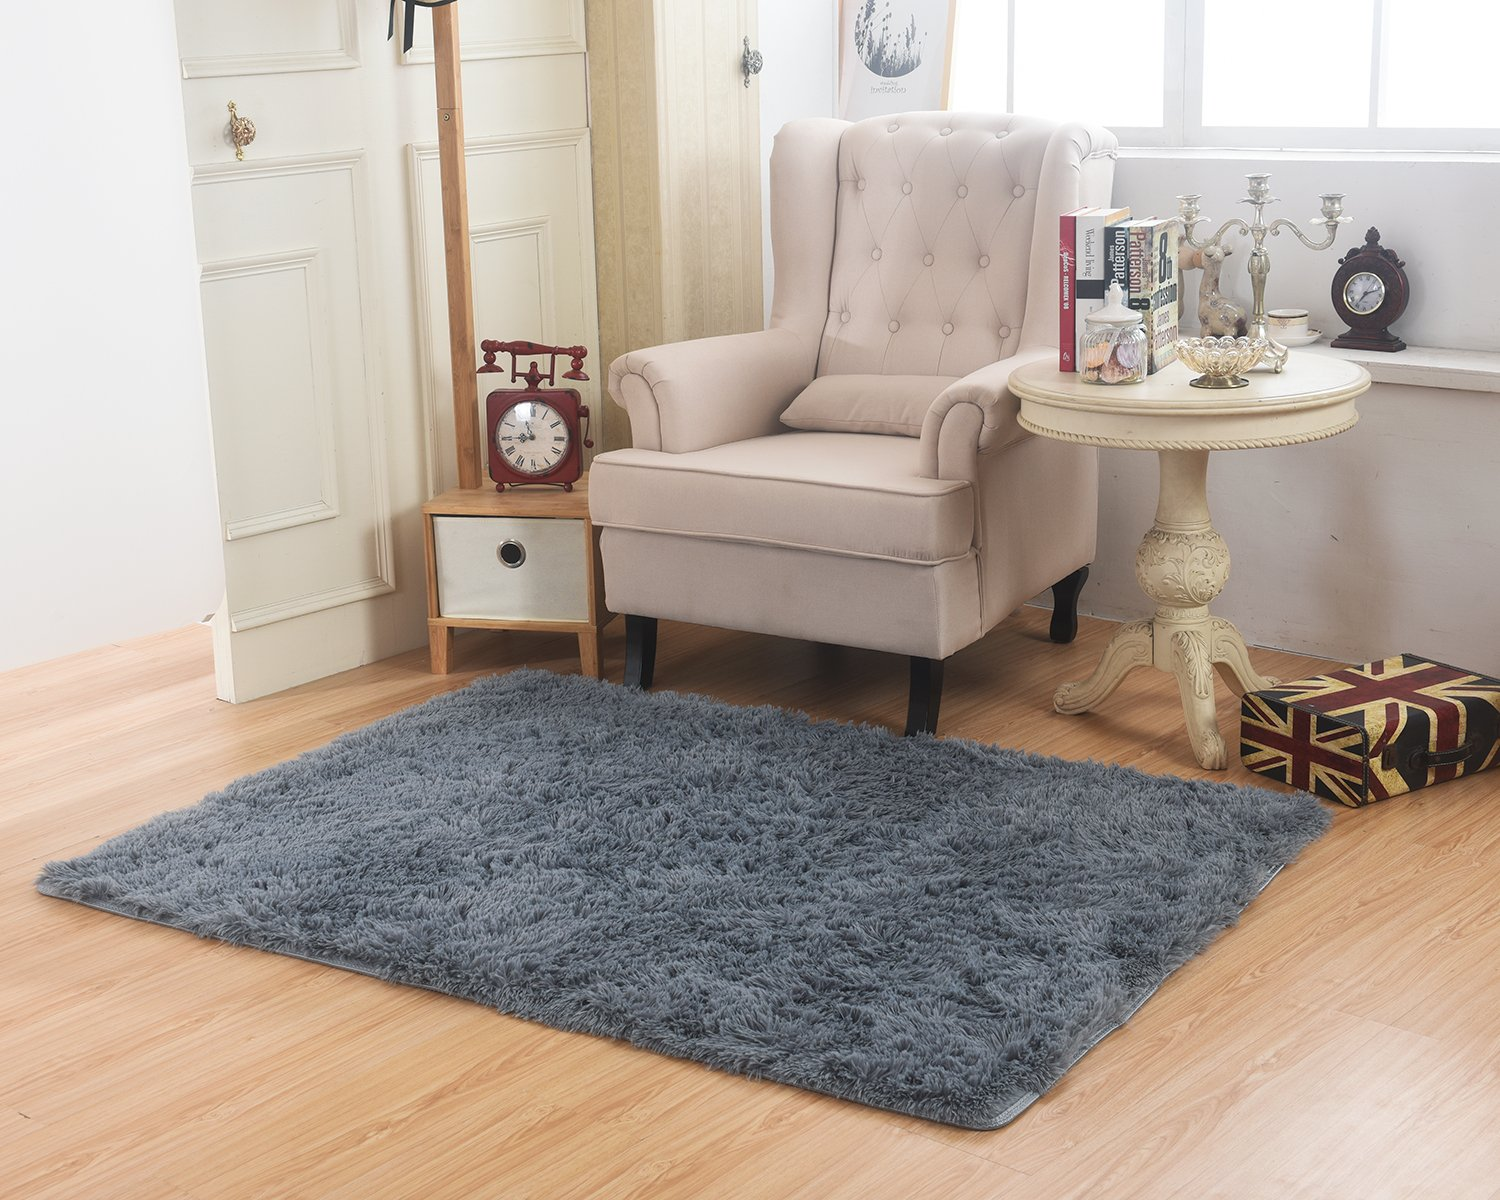 Buy MBIGM Living Room Bedroom Rugs, Ultra Soft Modern Area Rugs ...